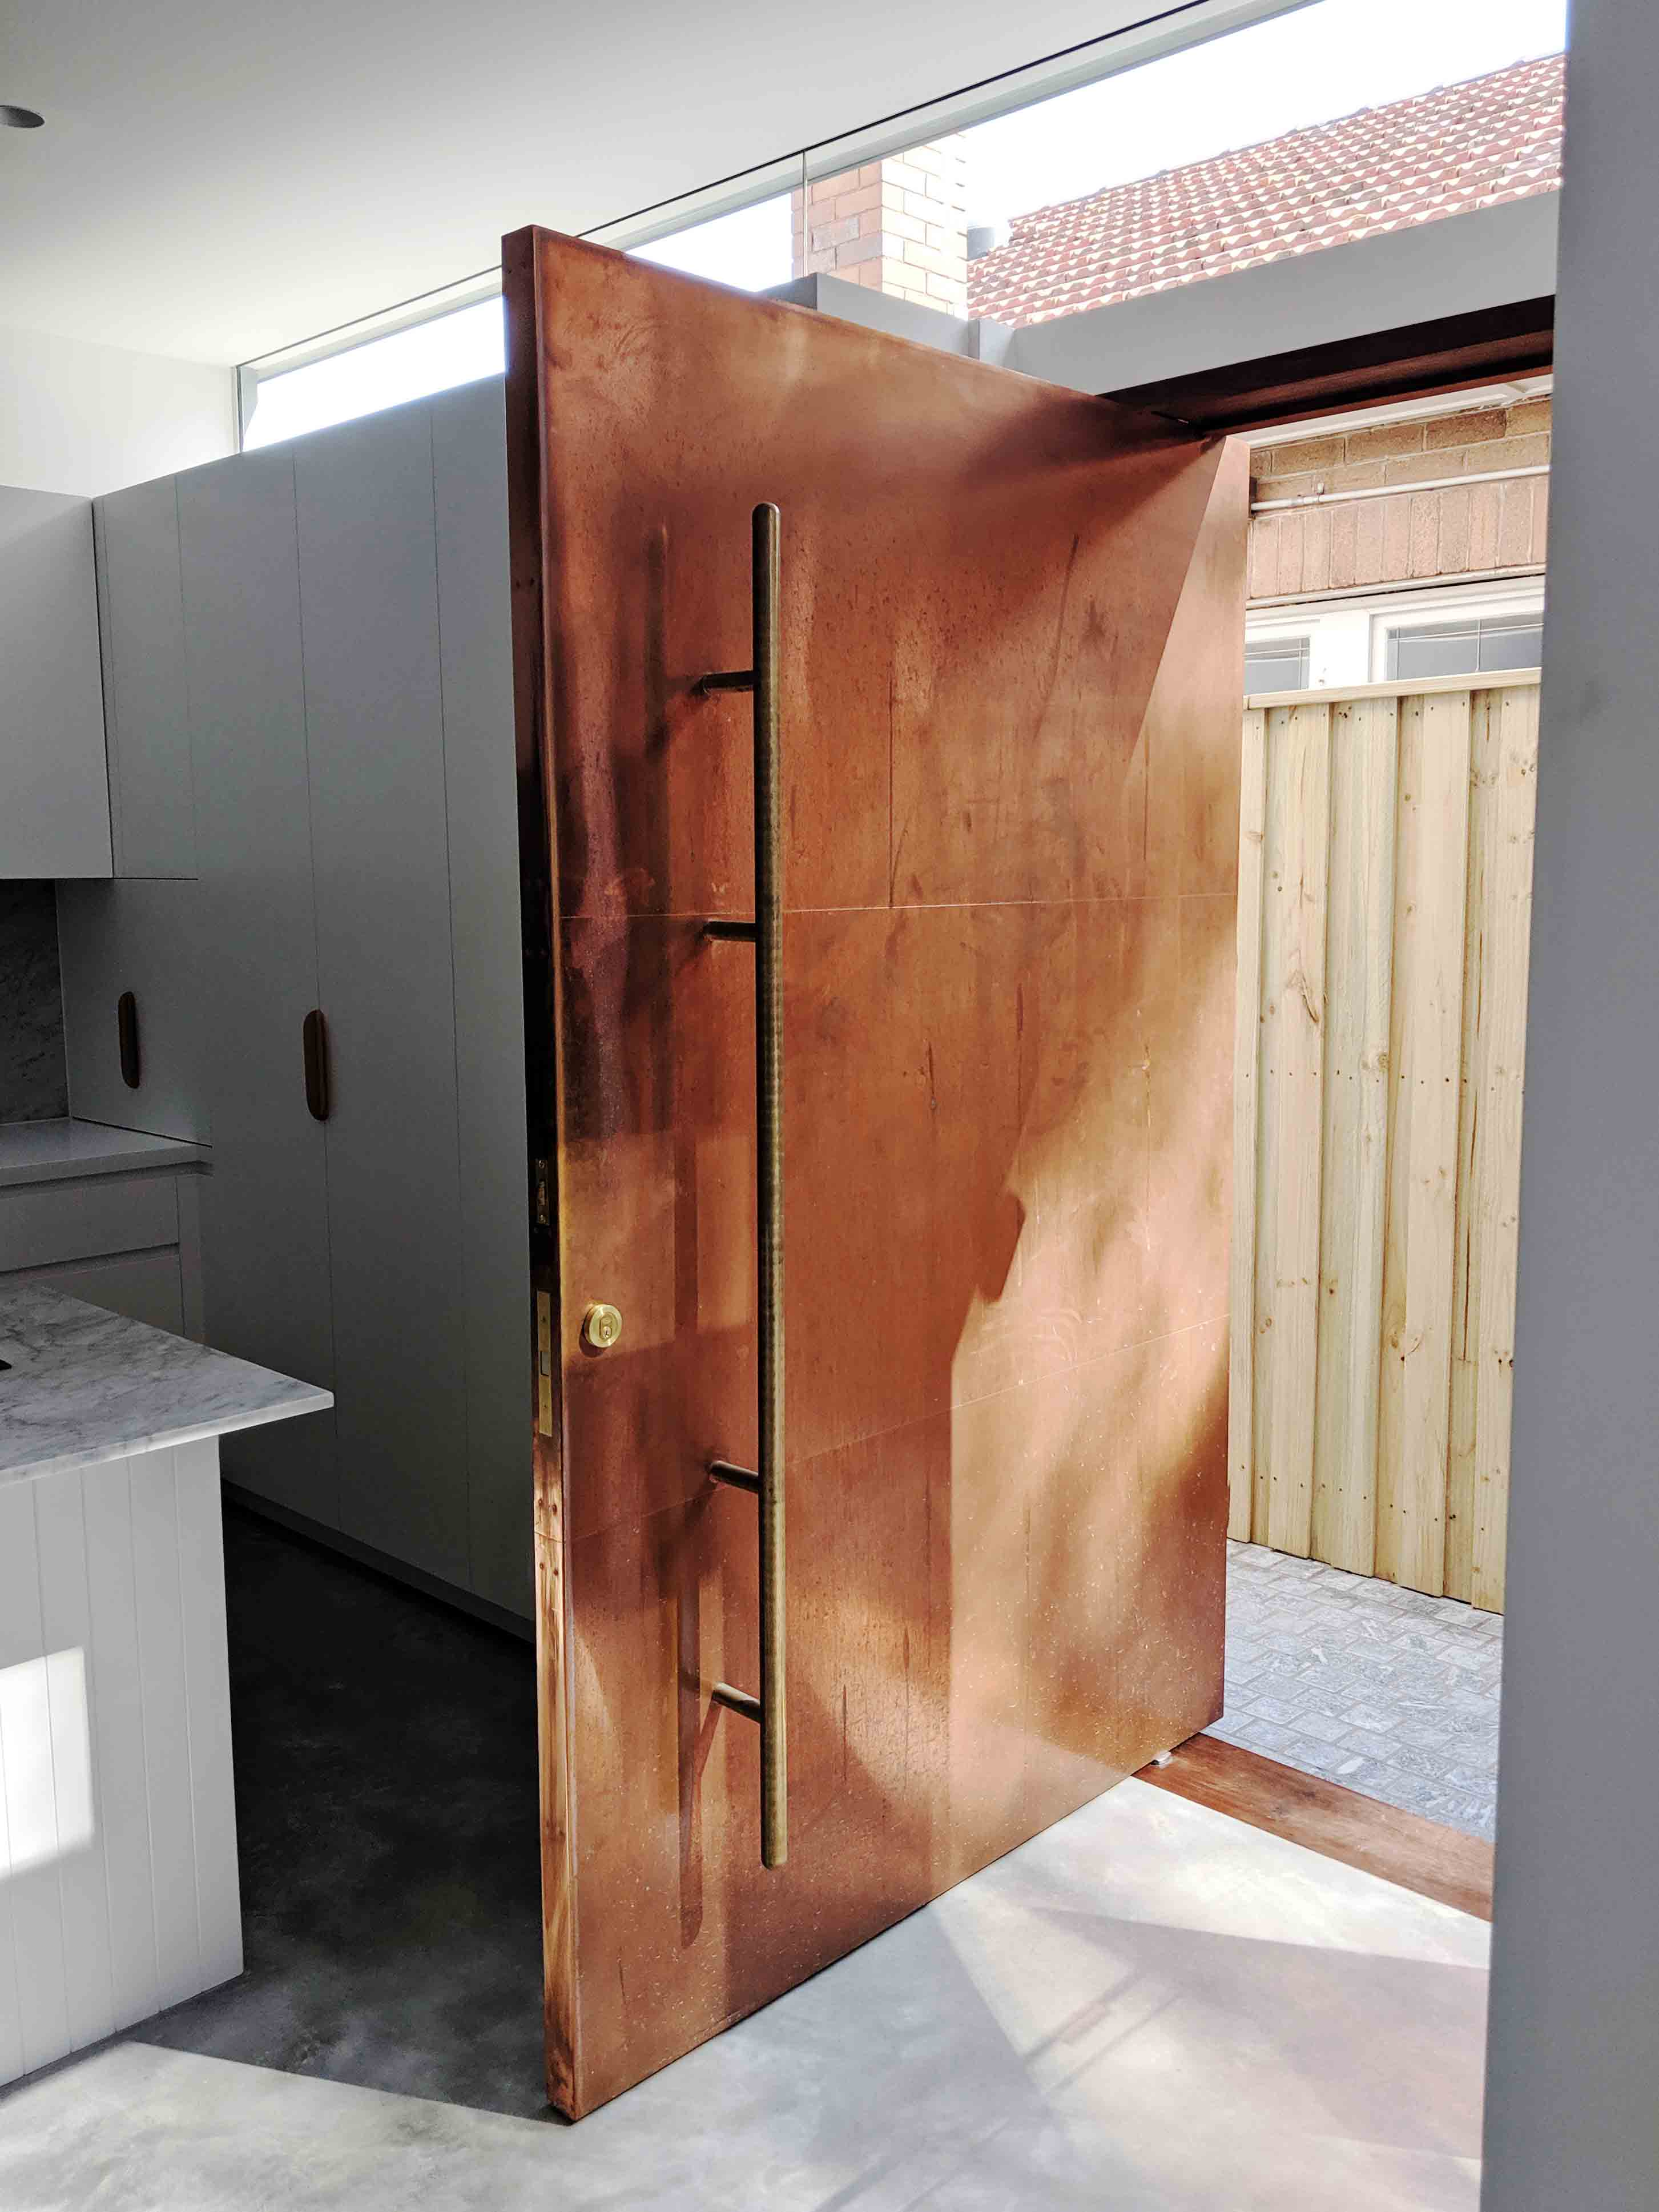 This entrance pivot door is clad with copper, which's rustic look will change over time. Design by Coppice Joinery. FritsJurgens System M pivot hinge.